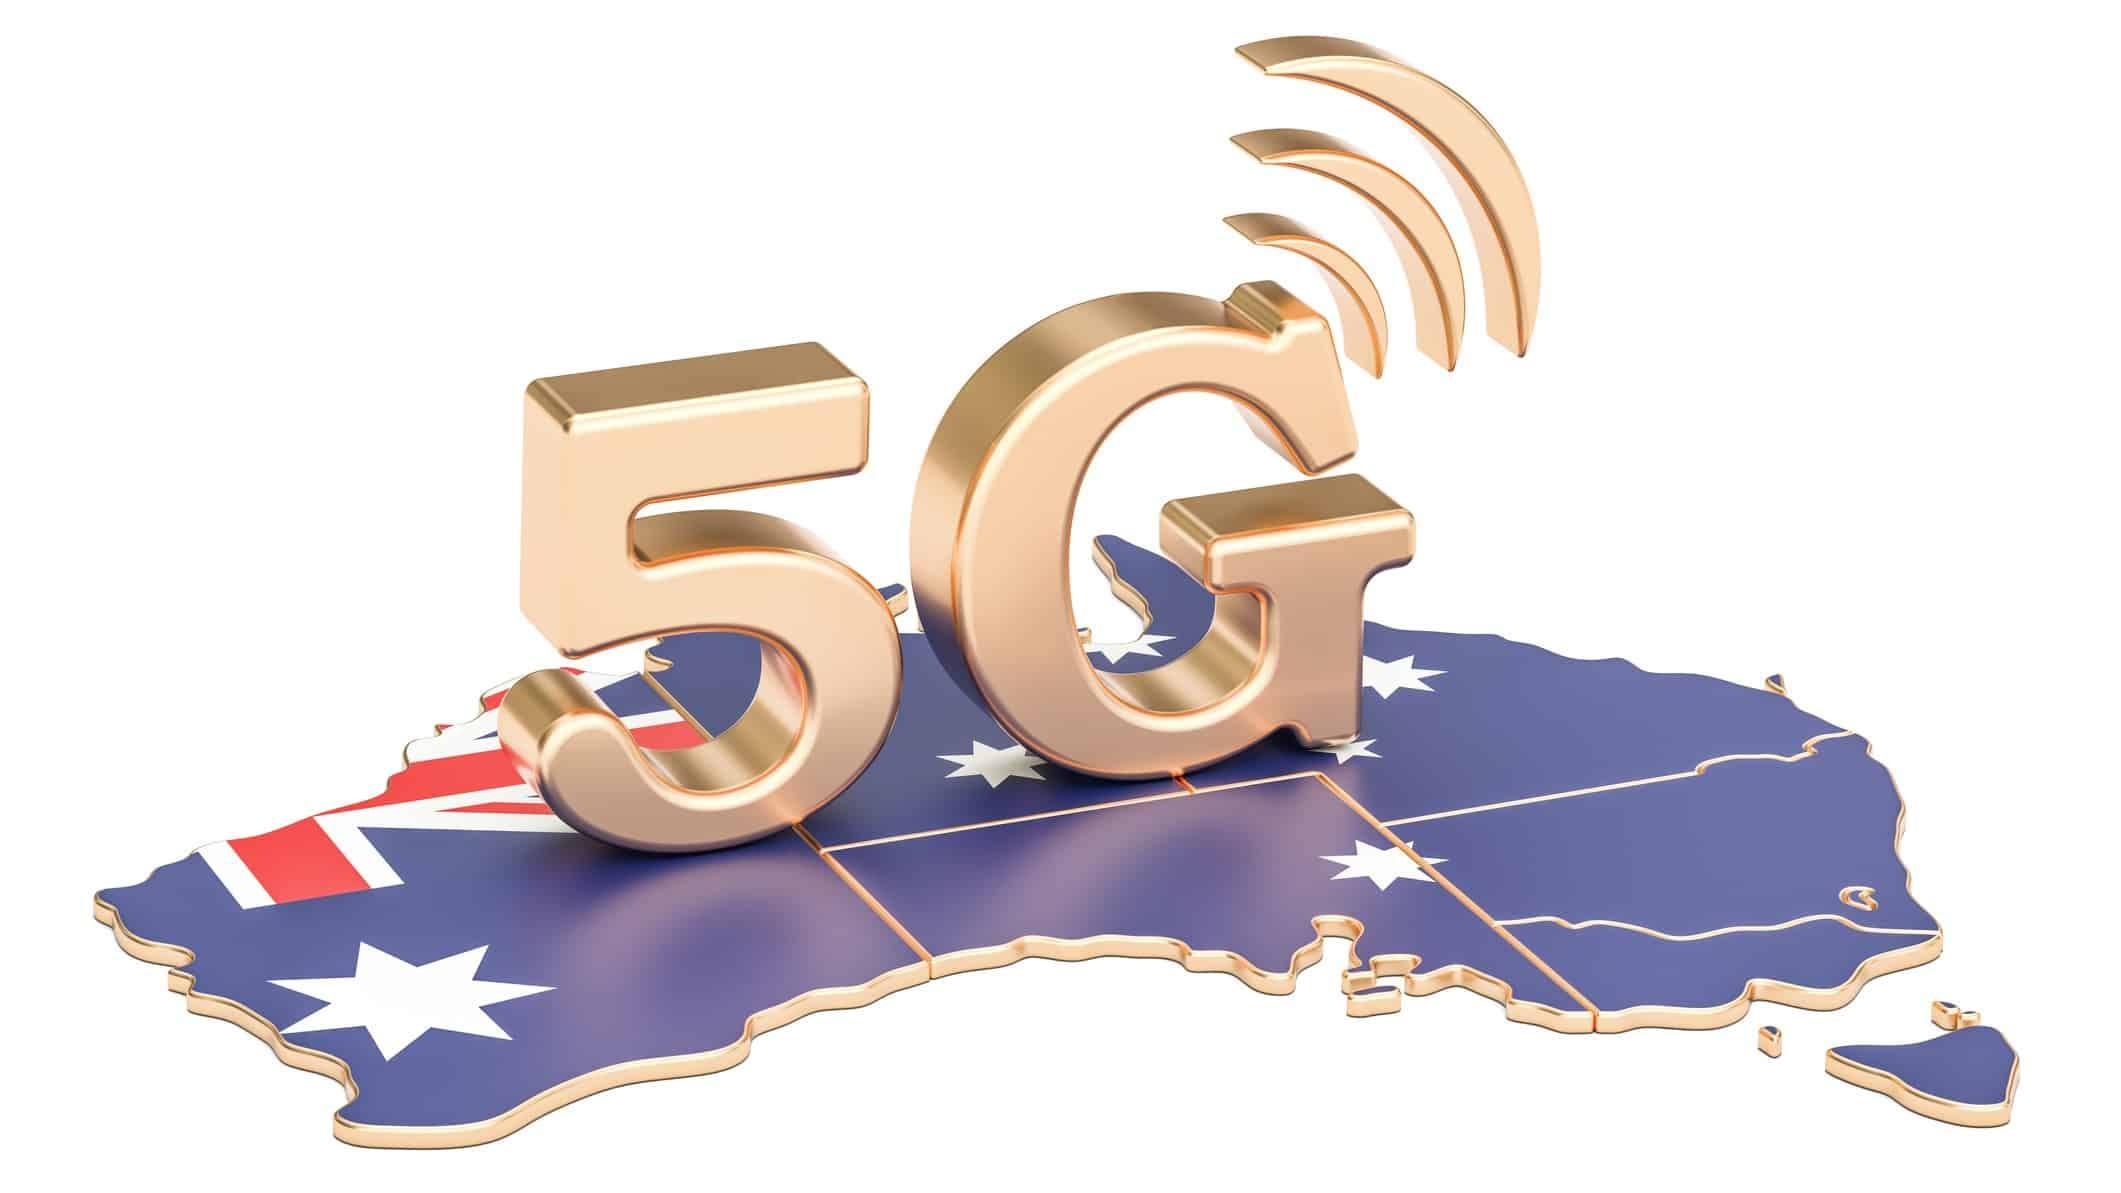 map of australia with golden 5G sitting on it representing telstra share price profit result